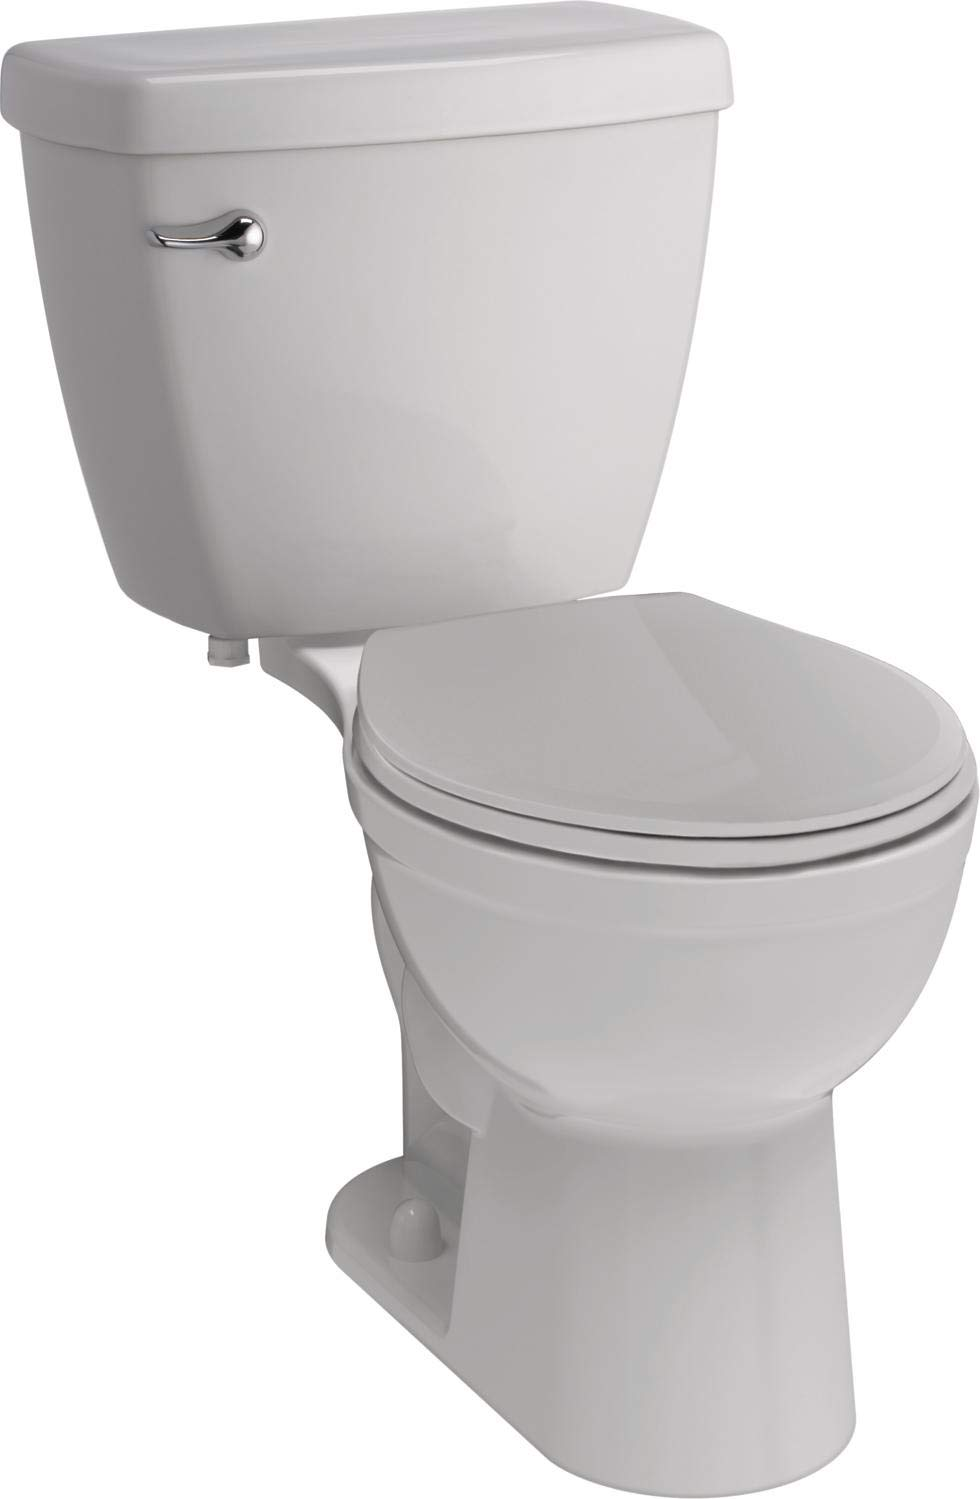 Delta Faucet Haywood White Round-Front Toilet with Slow-Close Nightlight Toilet Seat, Comfort Chair Height, 1.28 GPF, White by DELTA FAUCET